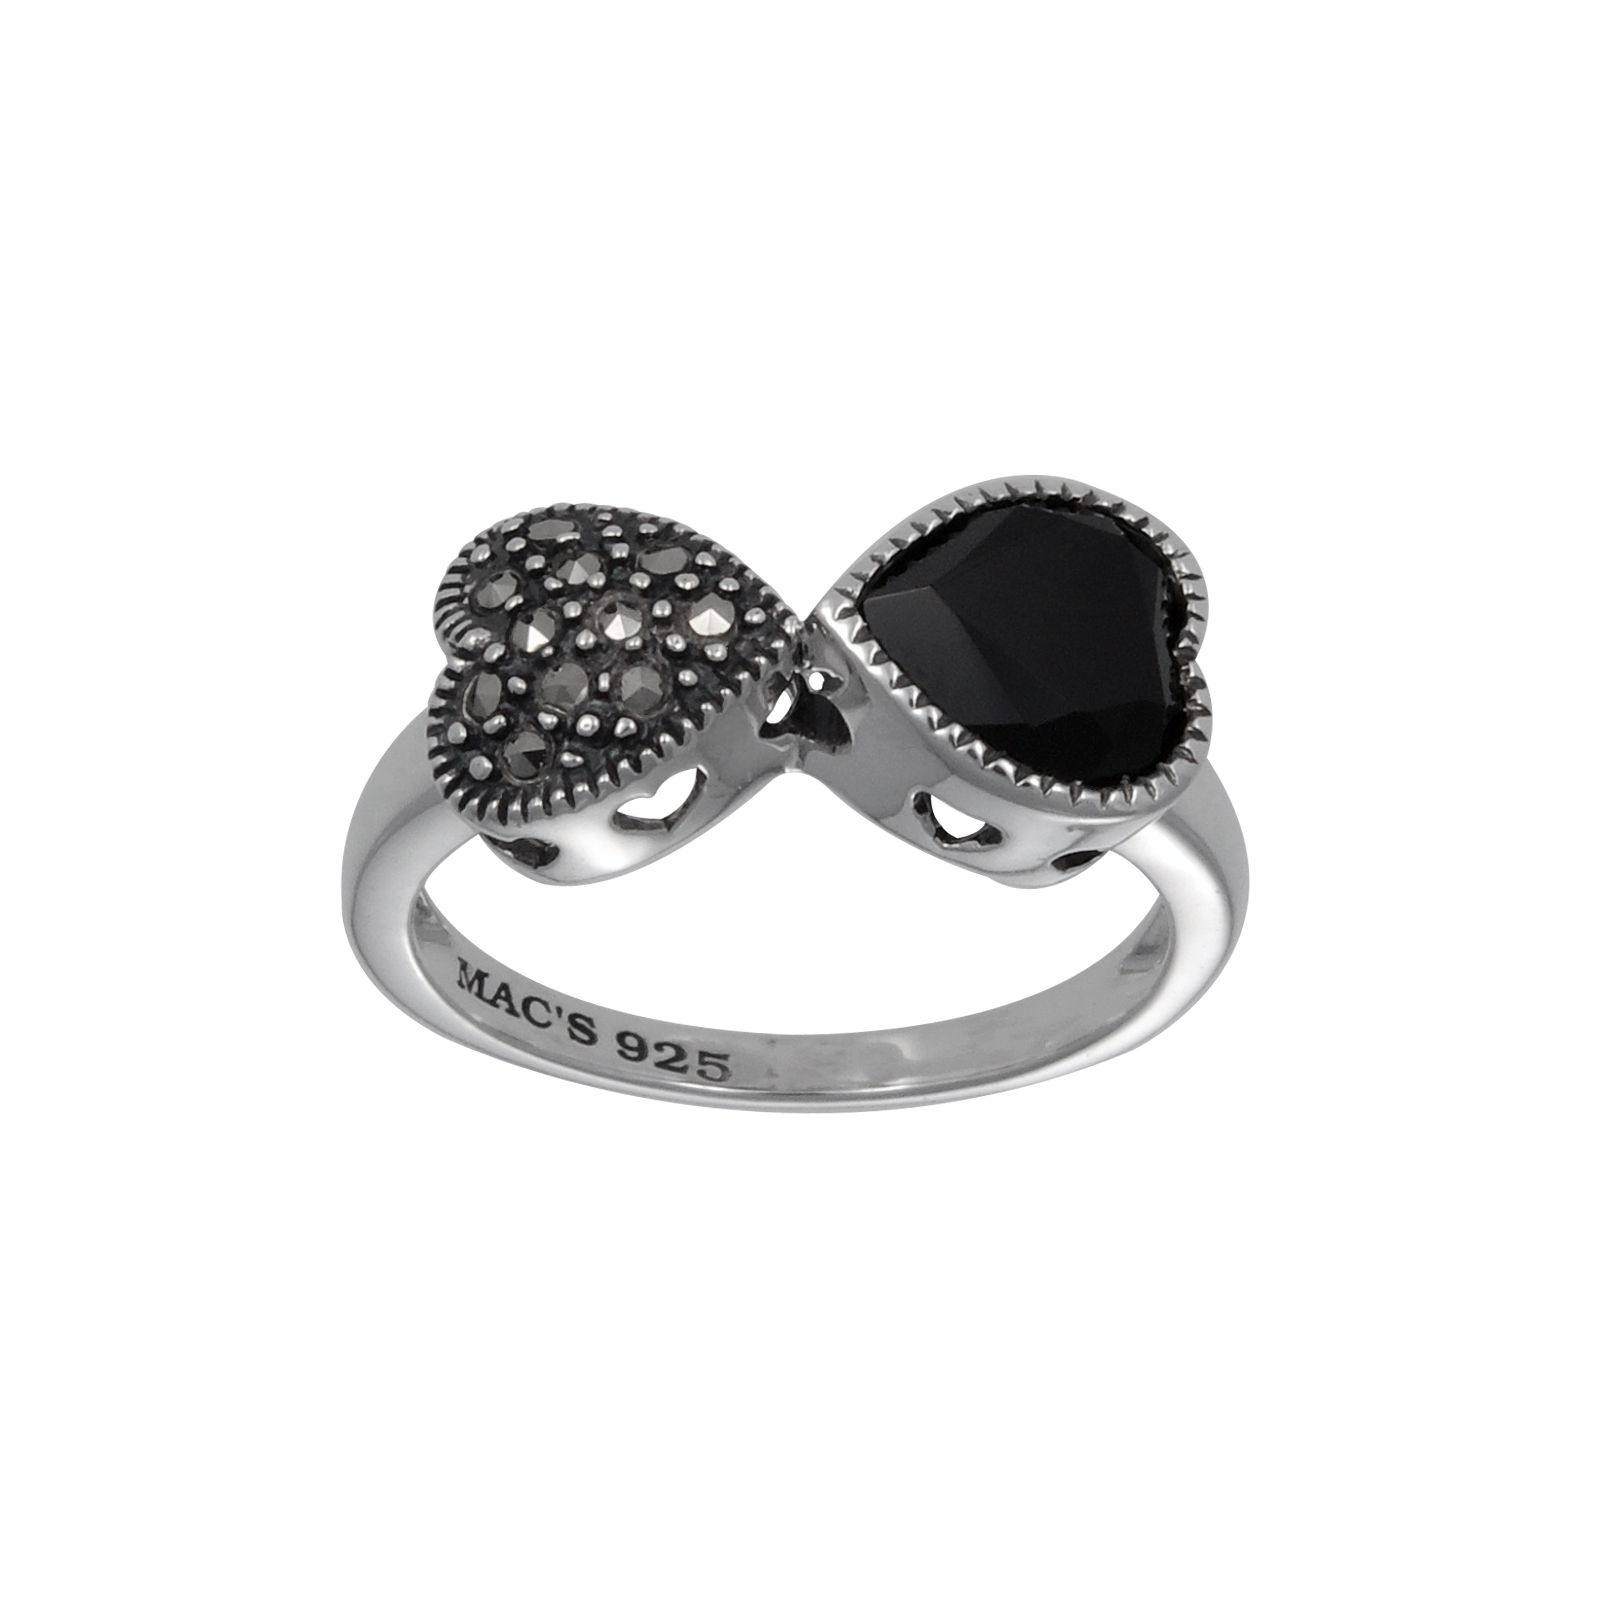 Mac's Ying-Yang Heart Shape Ring